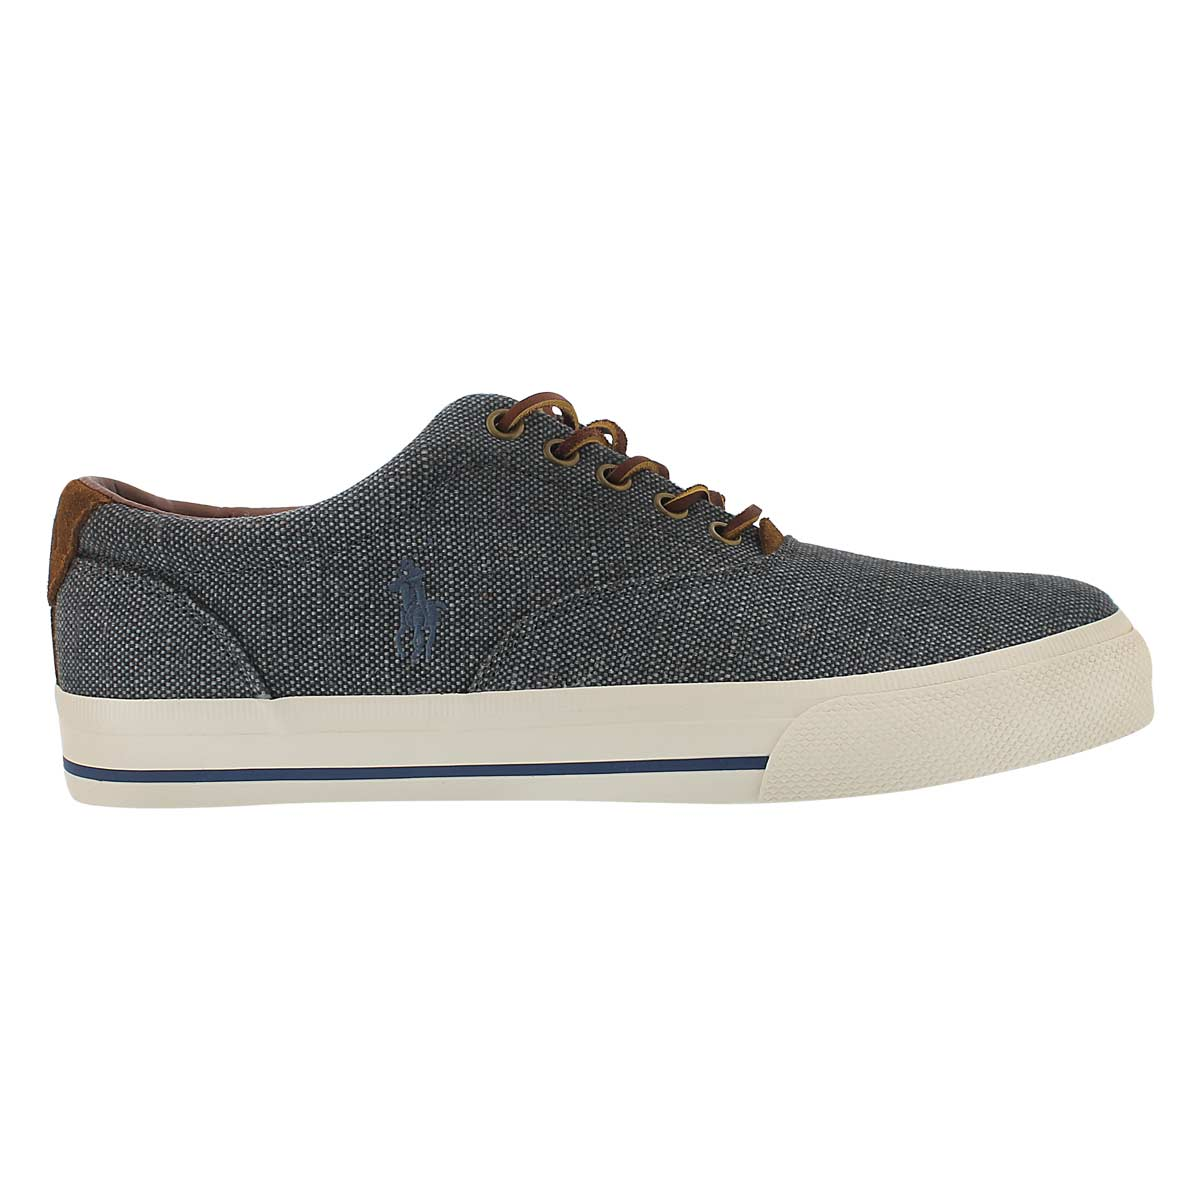 Mns Vaughn chambray burlap/suede sneak